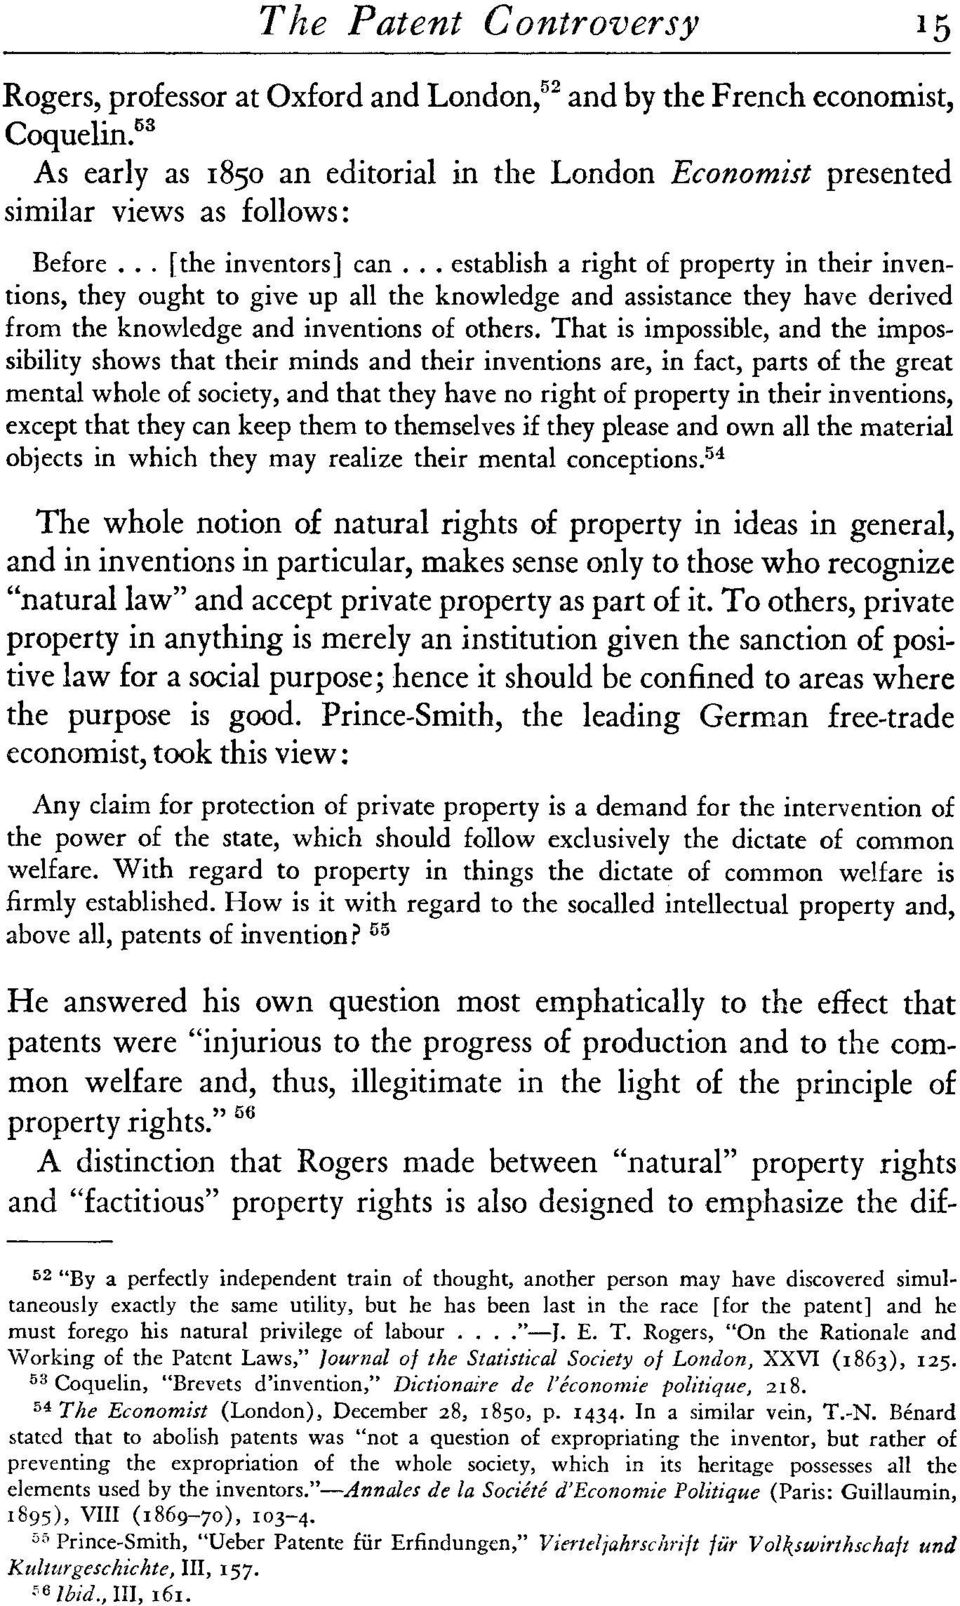 .... establish a right of property in their inventions, they ought to give up all the knowledge and assistance they have derived from the knowledge and inventions of others.